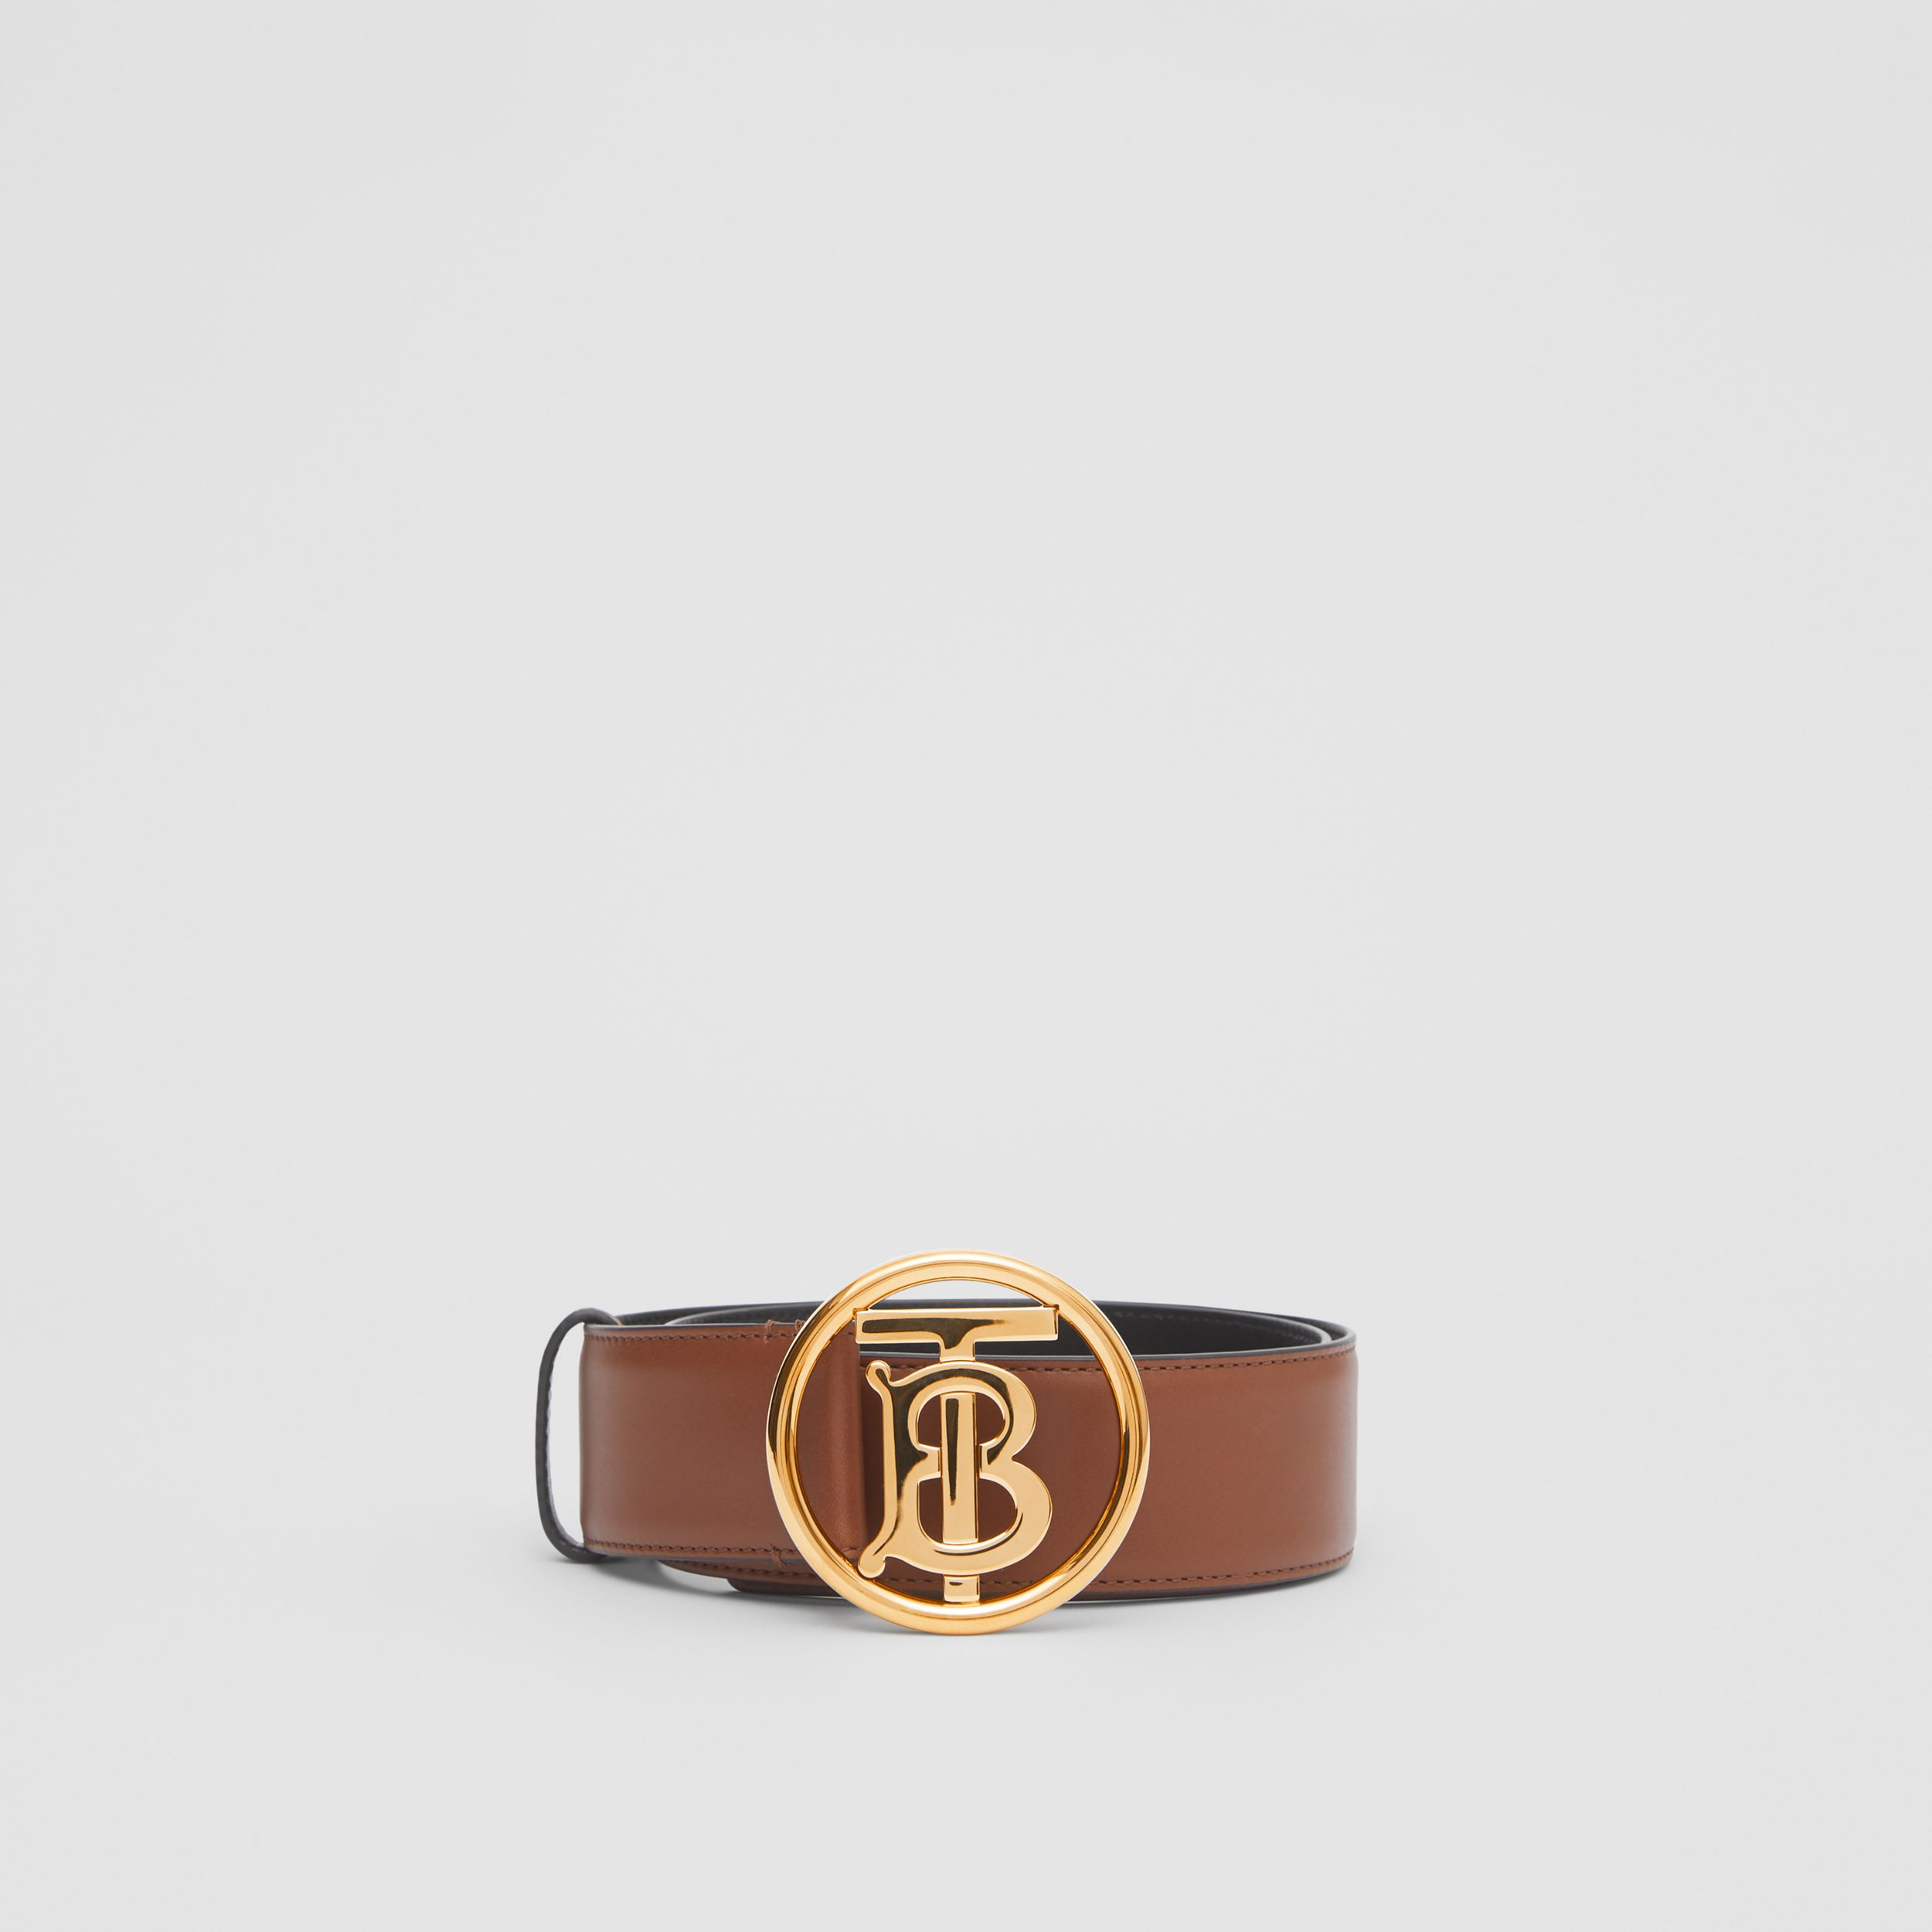 Monogram Motif Leather Belt in Tan/antique Dark Brass - Women | Burberry Hong Kong S.A.R. - 3